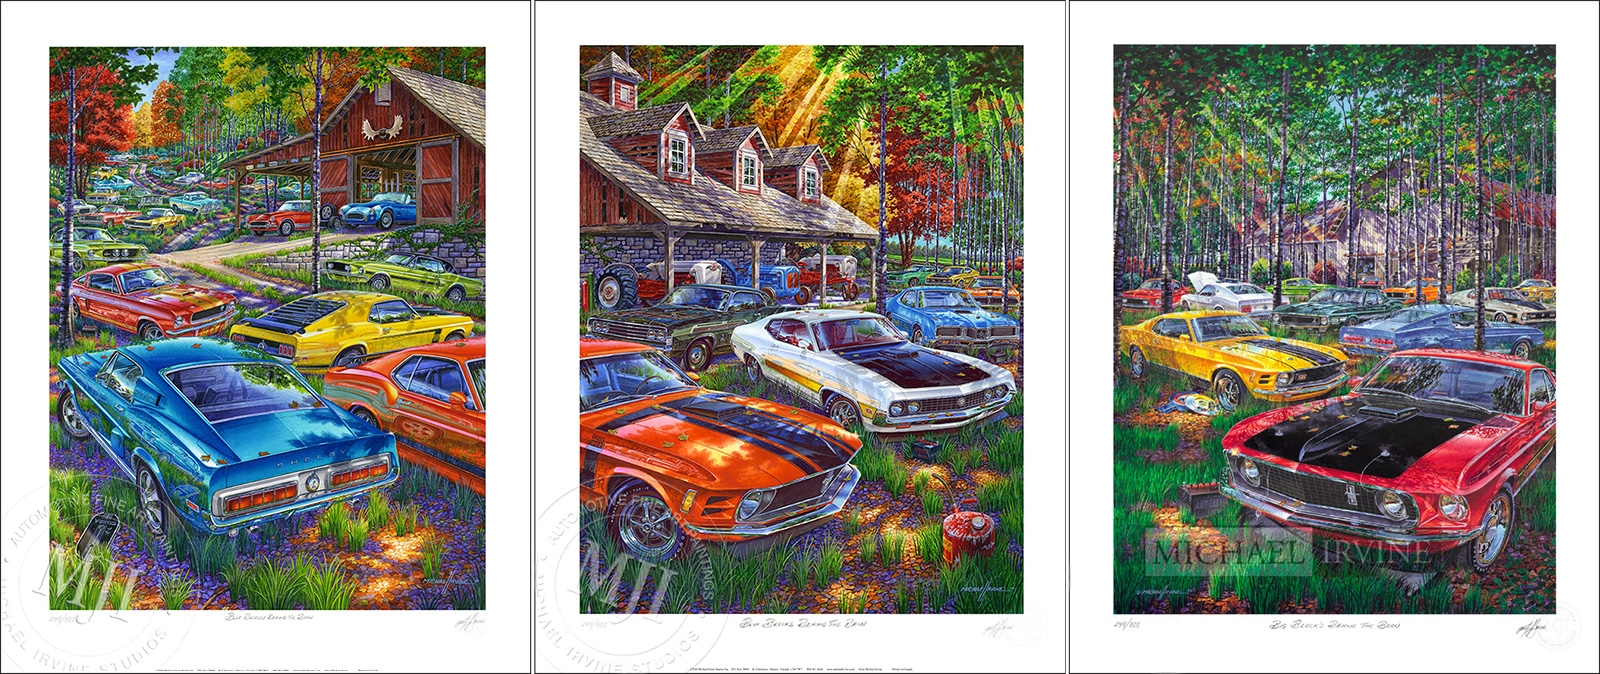 Set of Limited Edition Prints—signed/numbered by Artist Michael Irvine